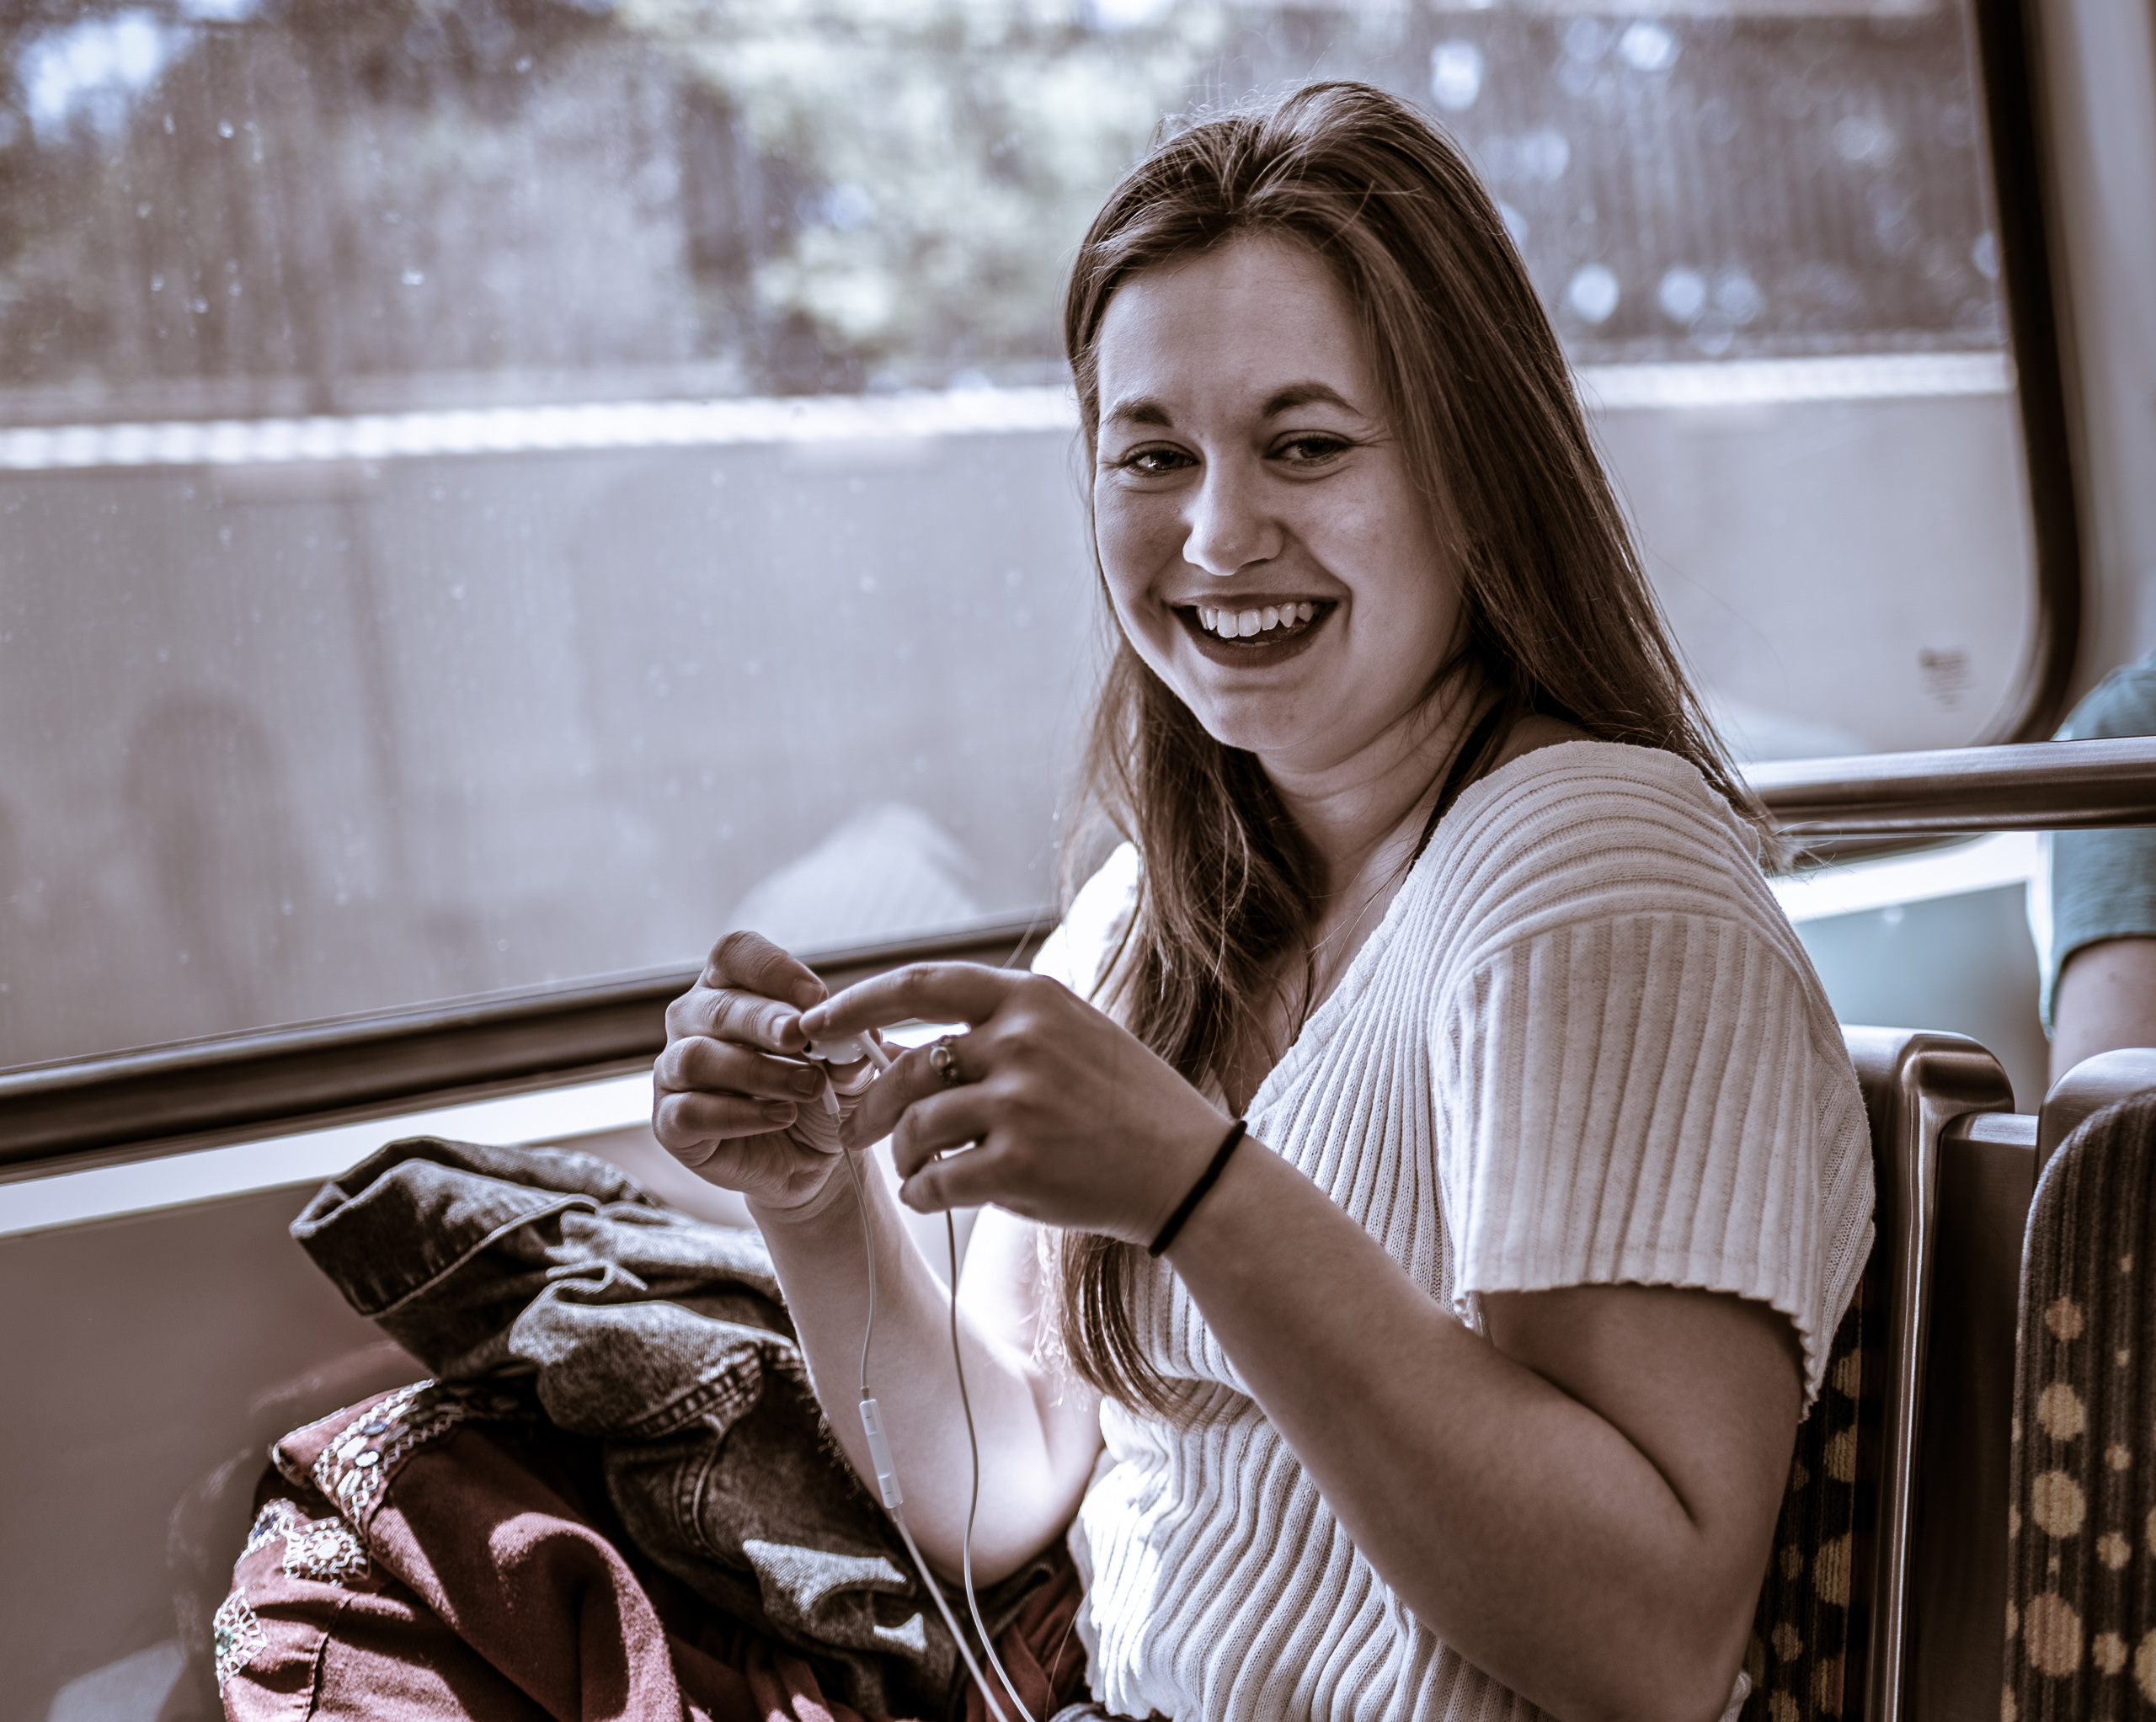 a photography student from Ithaca College spending a semester at ICLA (Ithaca College Los Angeles) rides the Metro Expo Line out to Santa Monica and then Venice where she's doing a video shoot today.  Here she smiles and plays with earbuds at the Expo Line's Exposition Park stop.